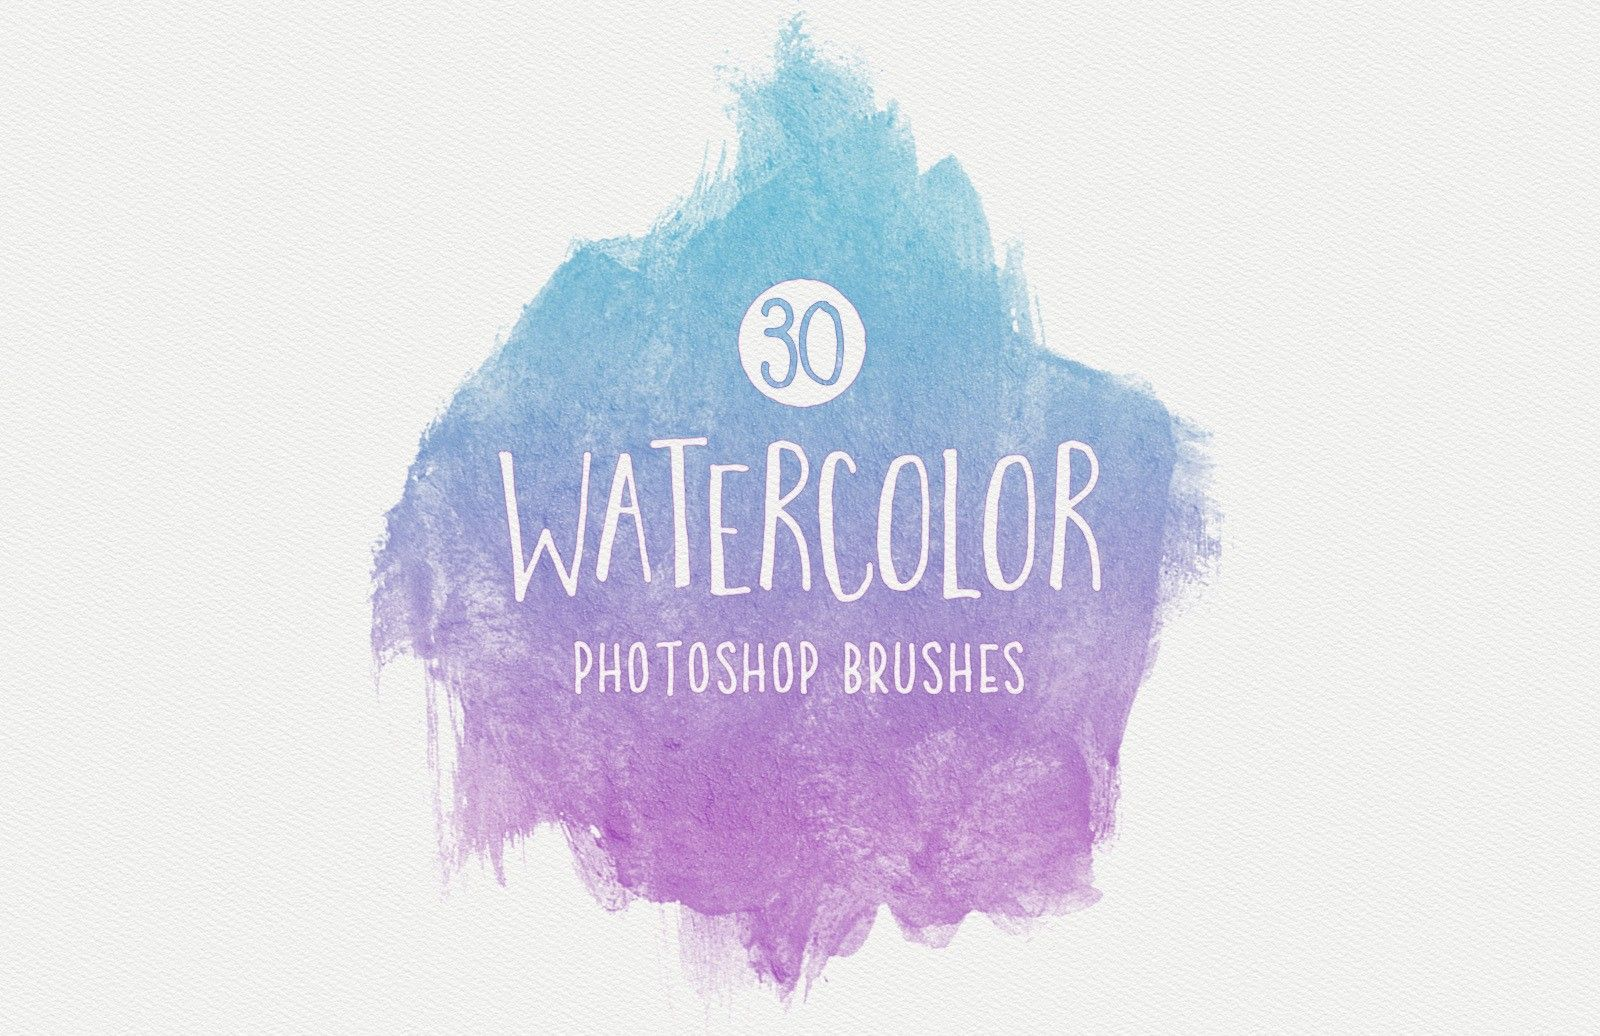 Watercolor Brushes For Photoshop Photoshop Pics Cool Photoshop